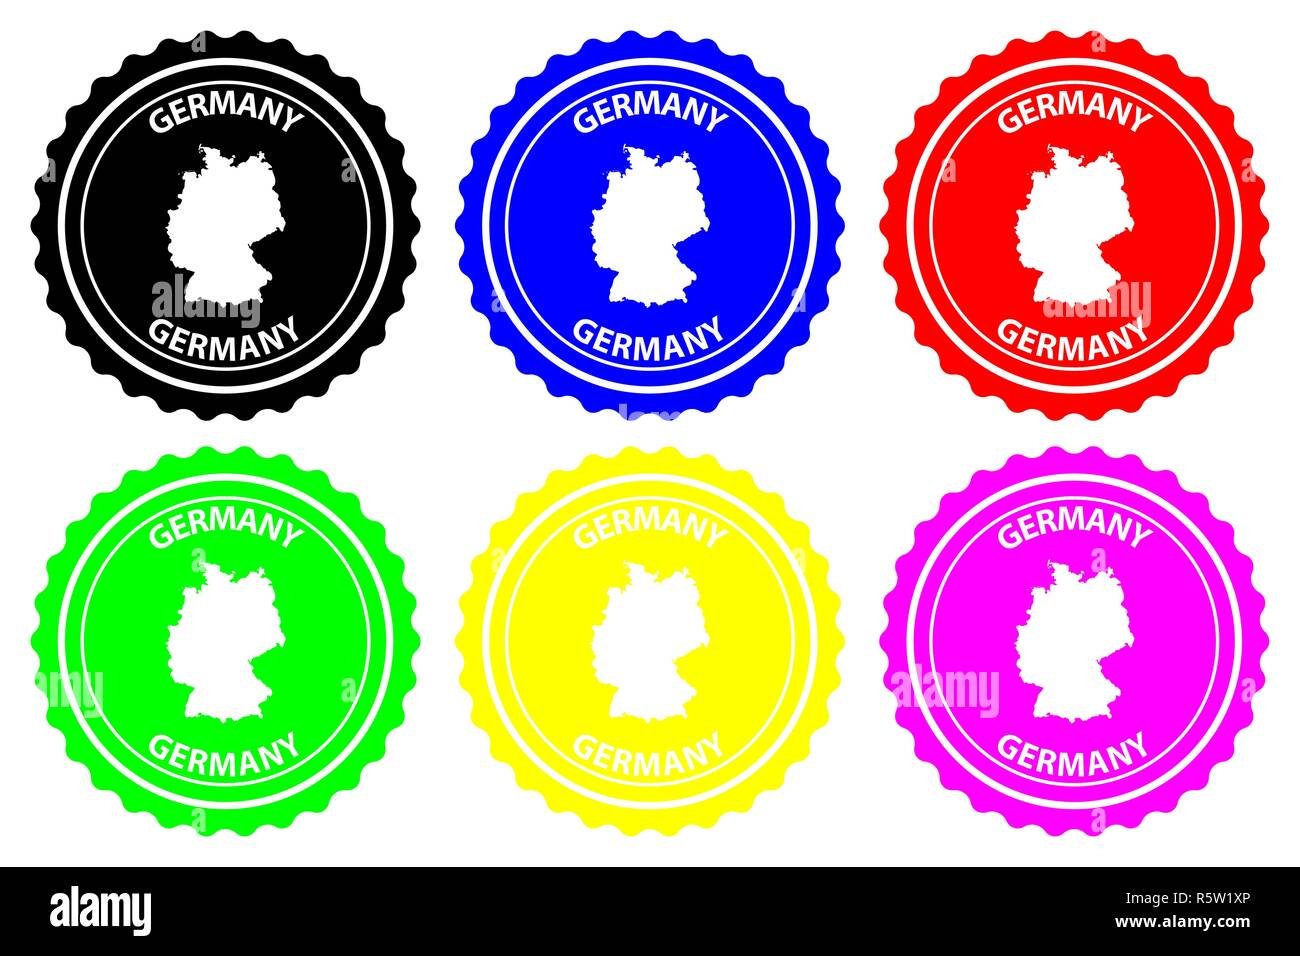 Germany - rubber stamp - vector, Deutschland map pattern - sticker - black, green, yellow, purple, blue and red - Stock Vector